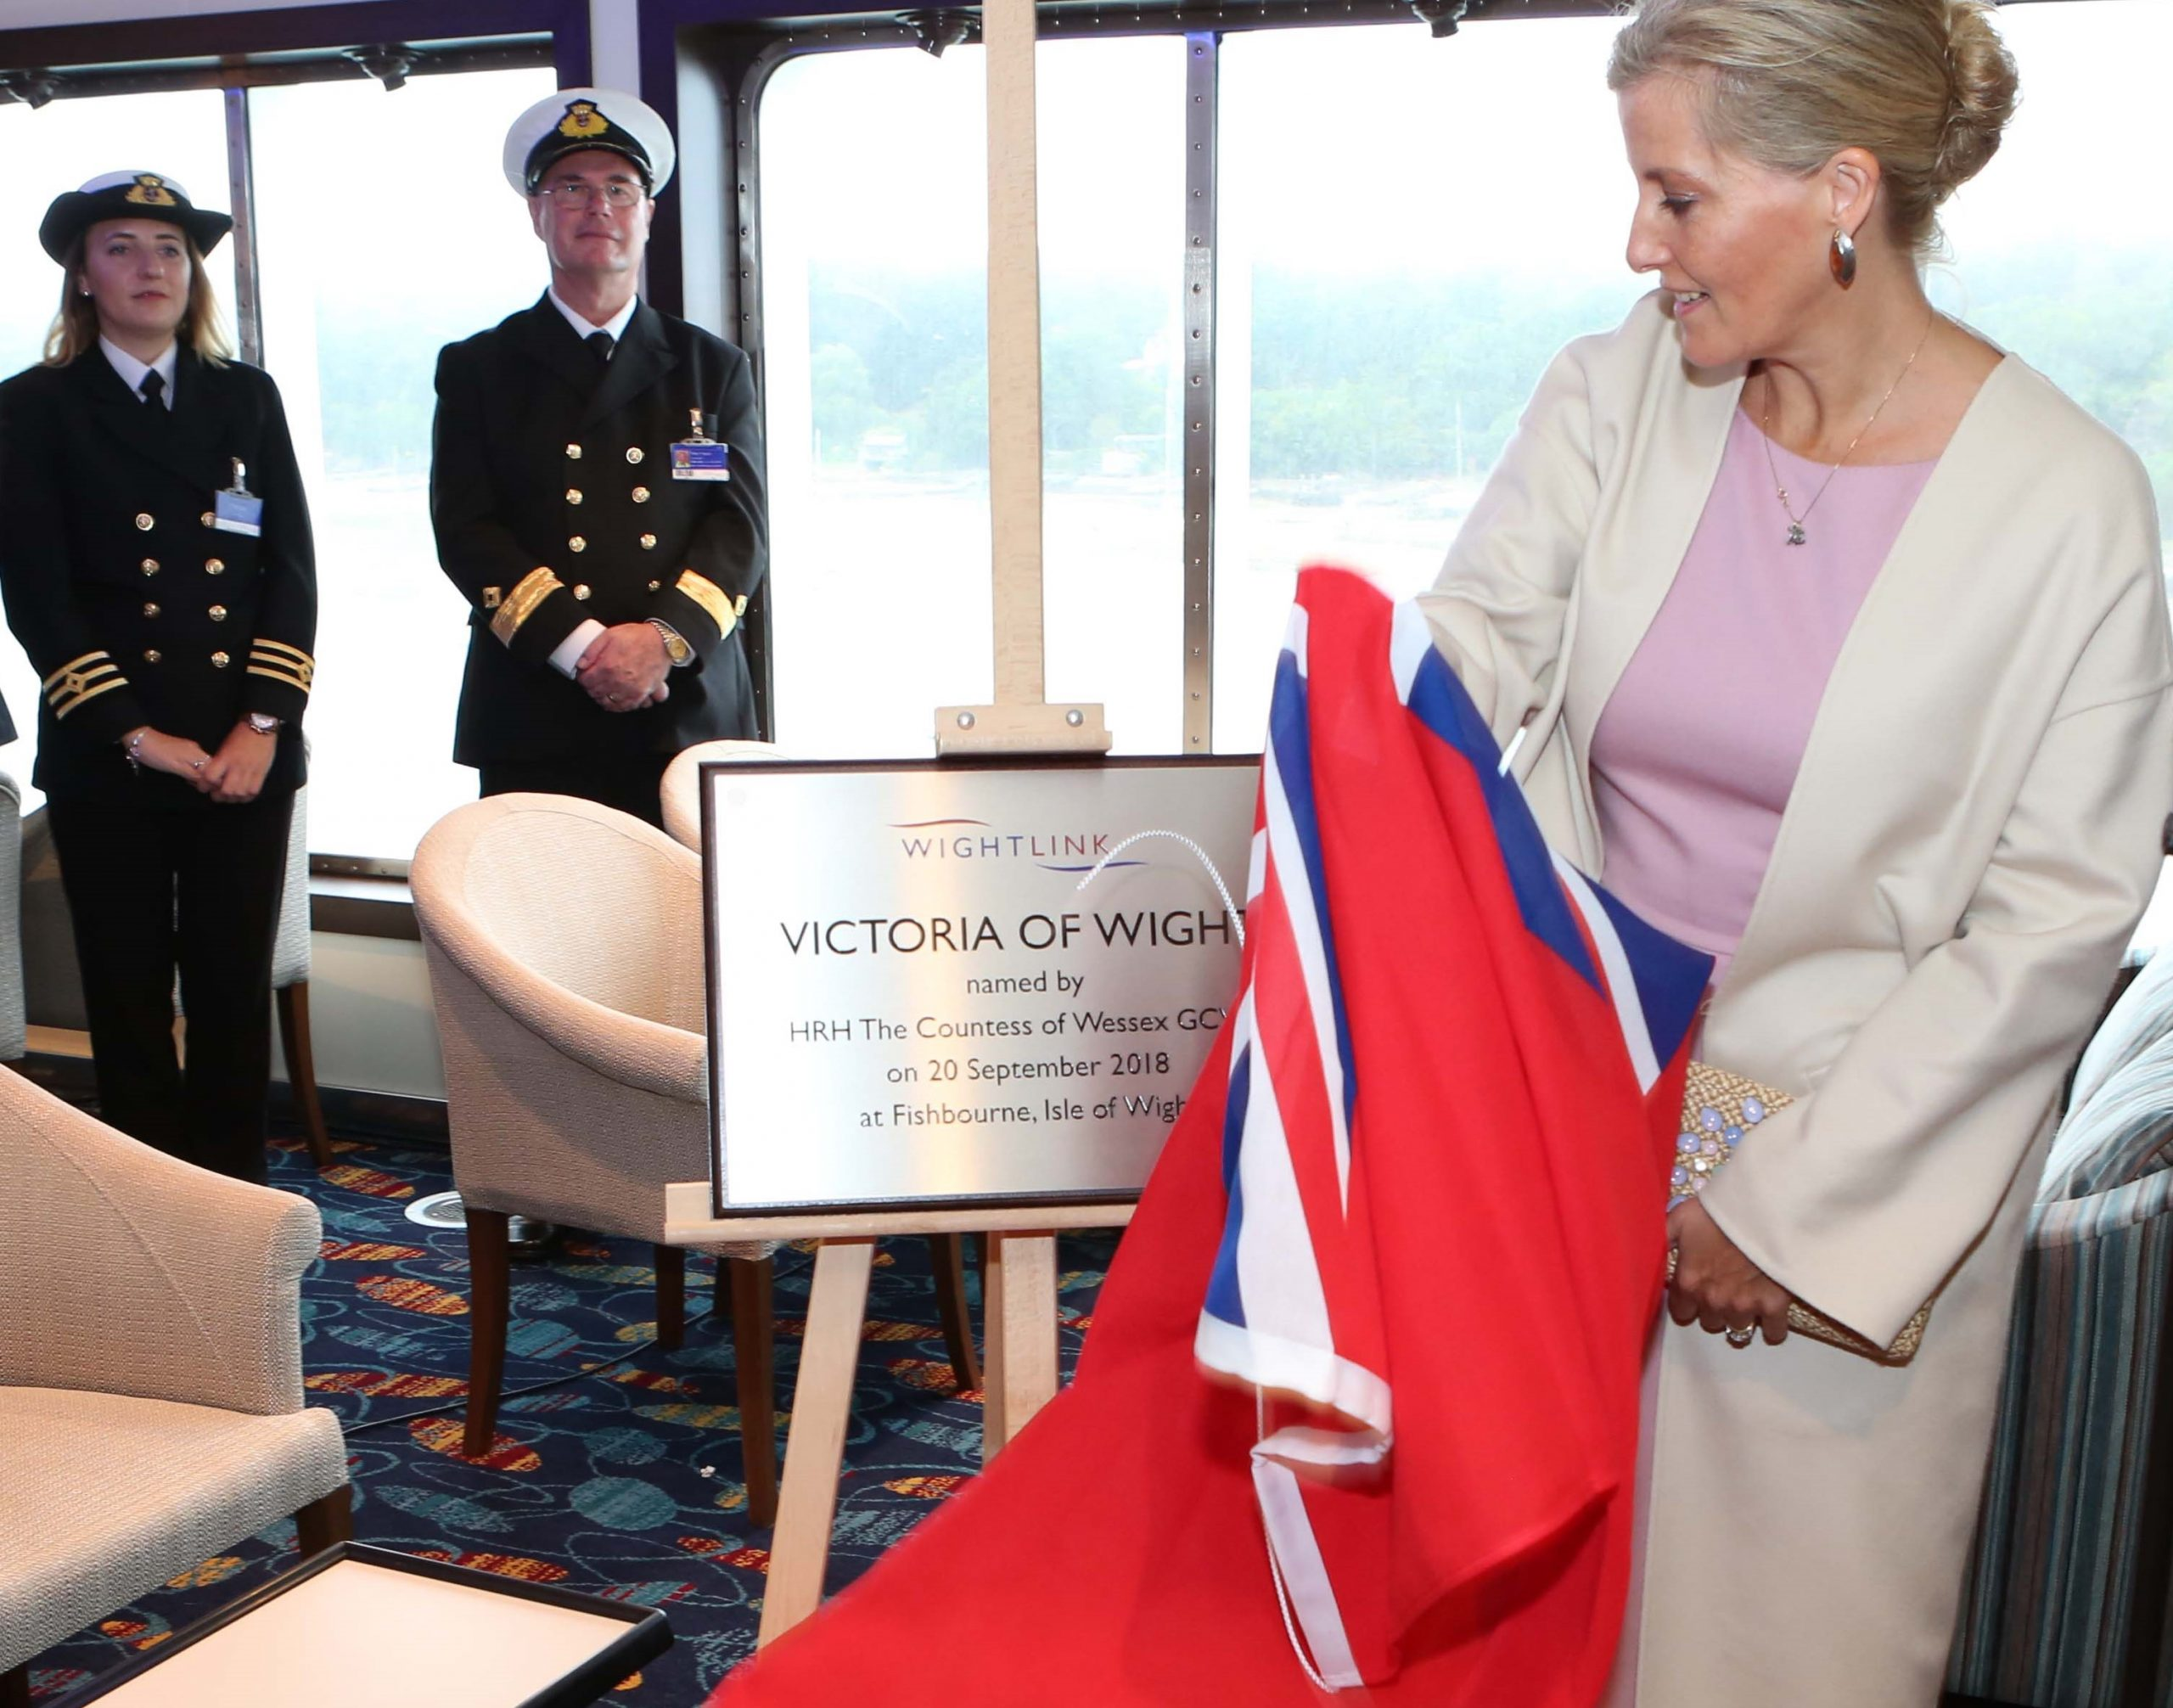 Victoria of Wight Naming Cermony with the countess of Wessex Wightlink